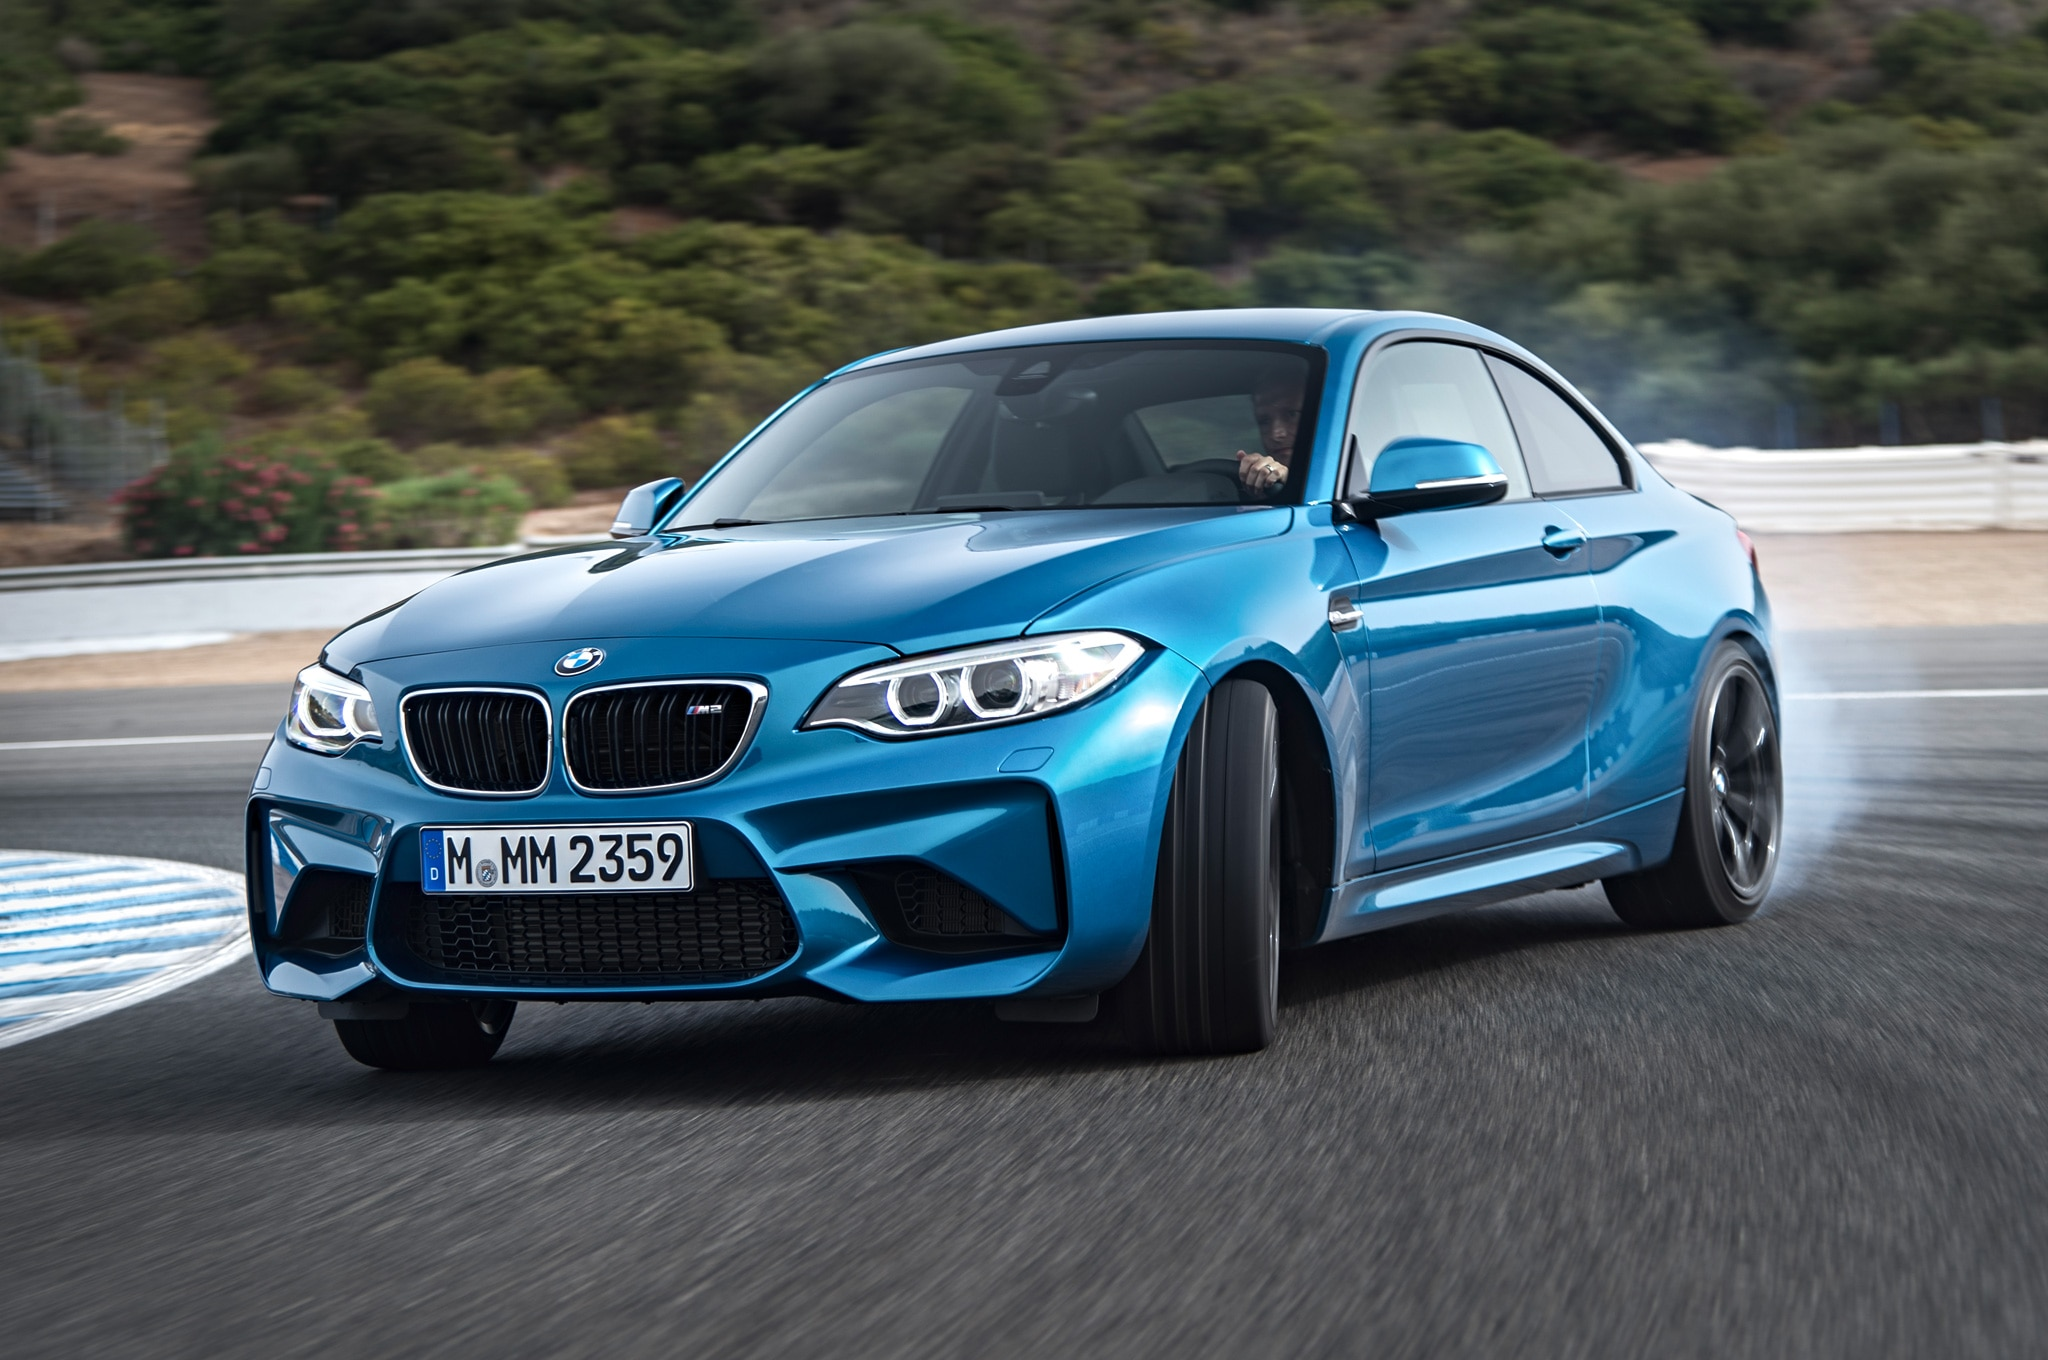 2016 bmw m2 debuts with flared bodywork 365 hp and a drift mode. Black Bedroom Furniture Sets. Home Design Ideas